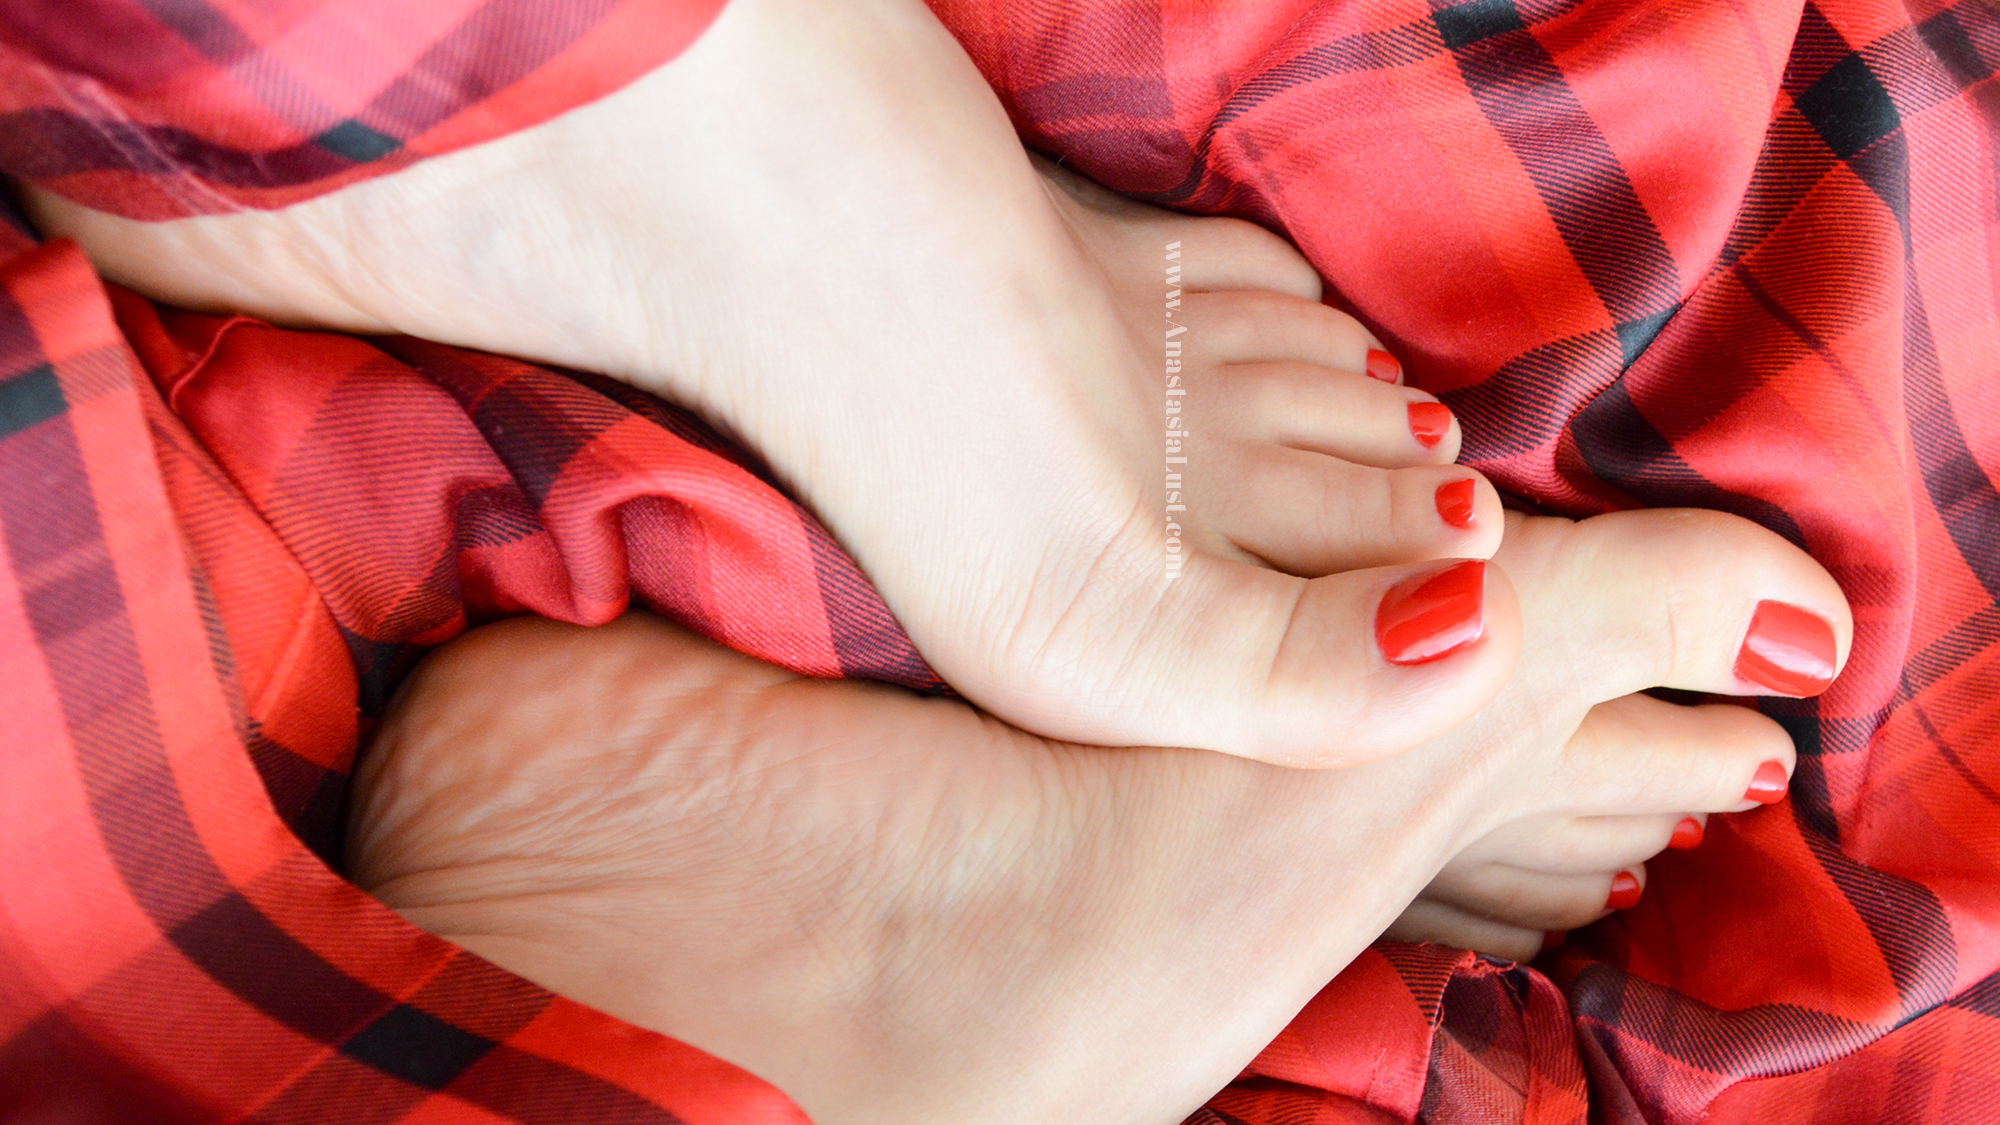 Foot Fetish Feet Red Pedicure Toes Soles